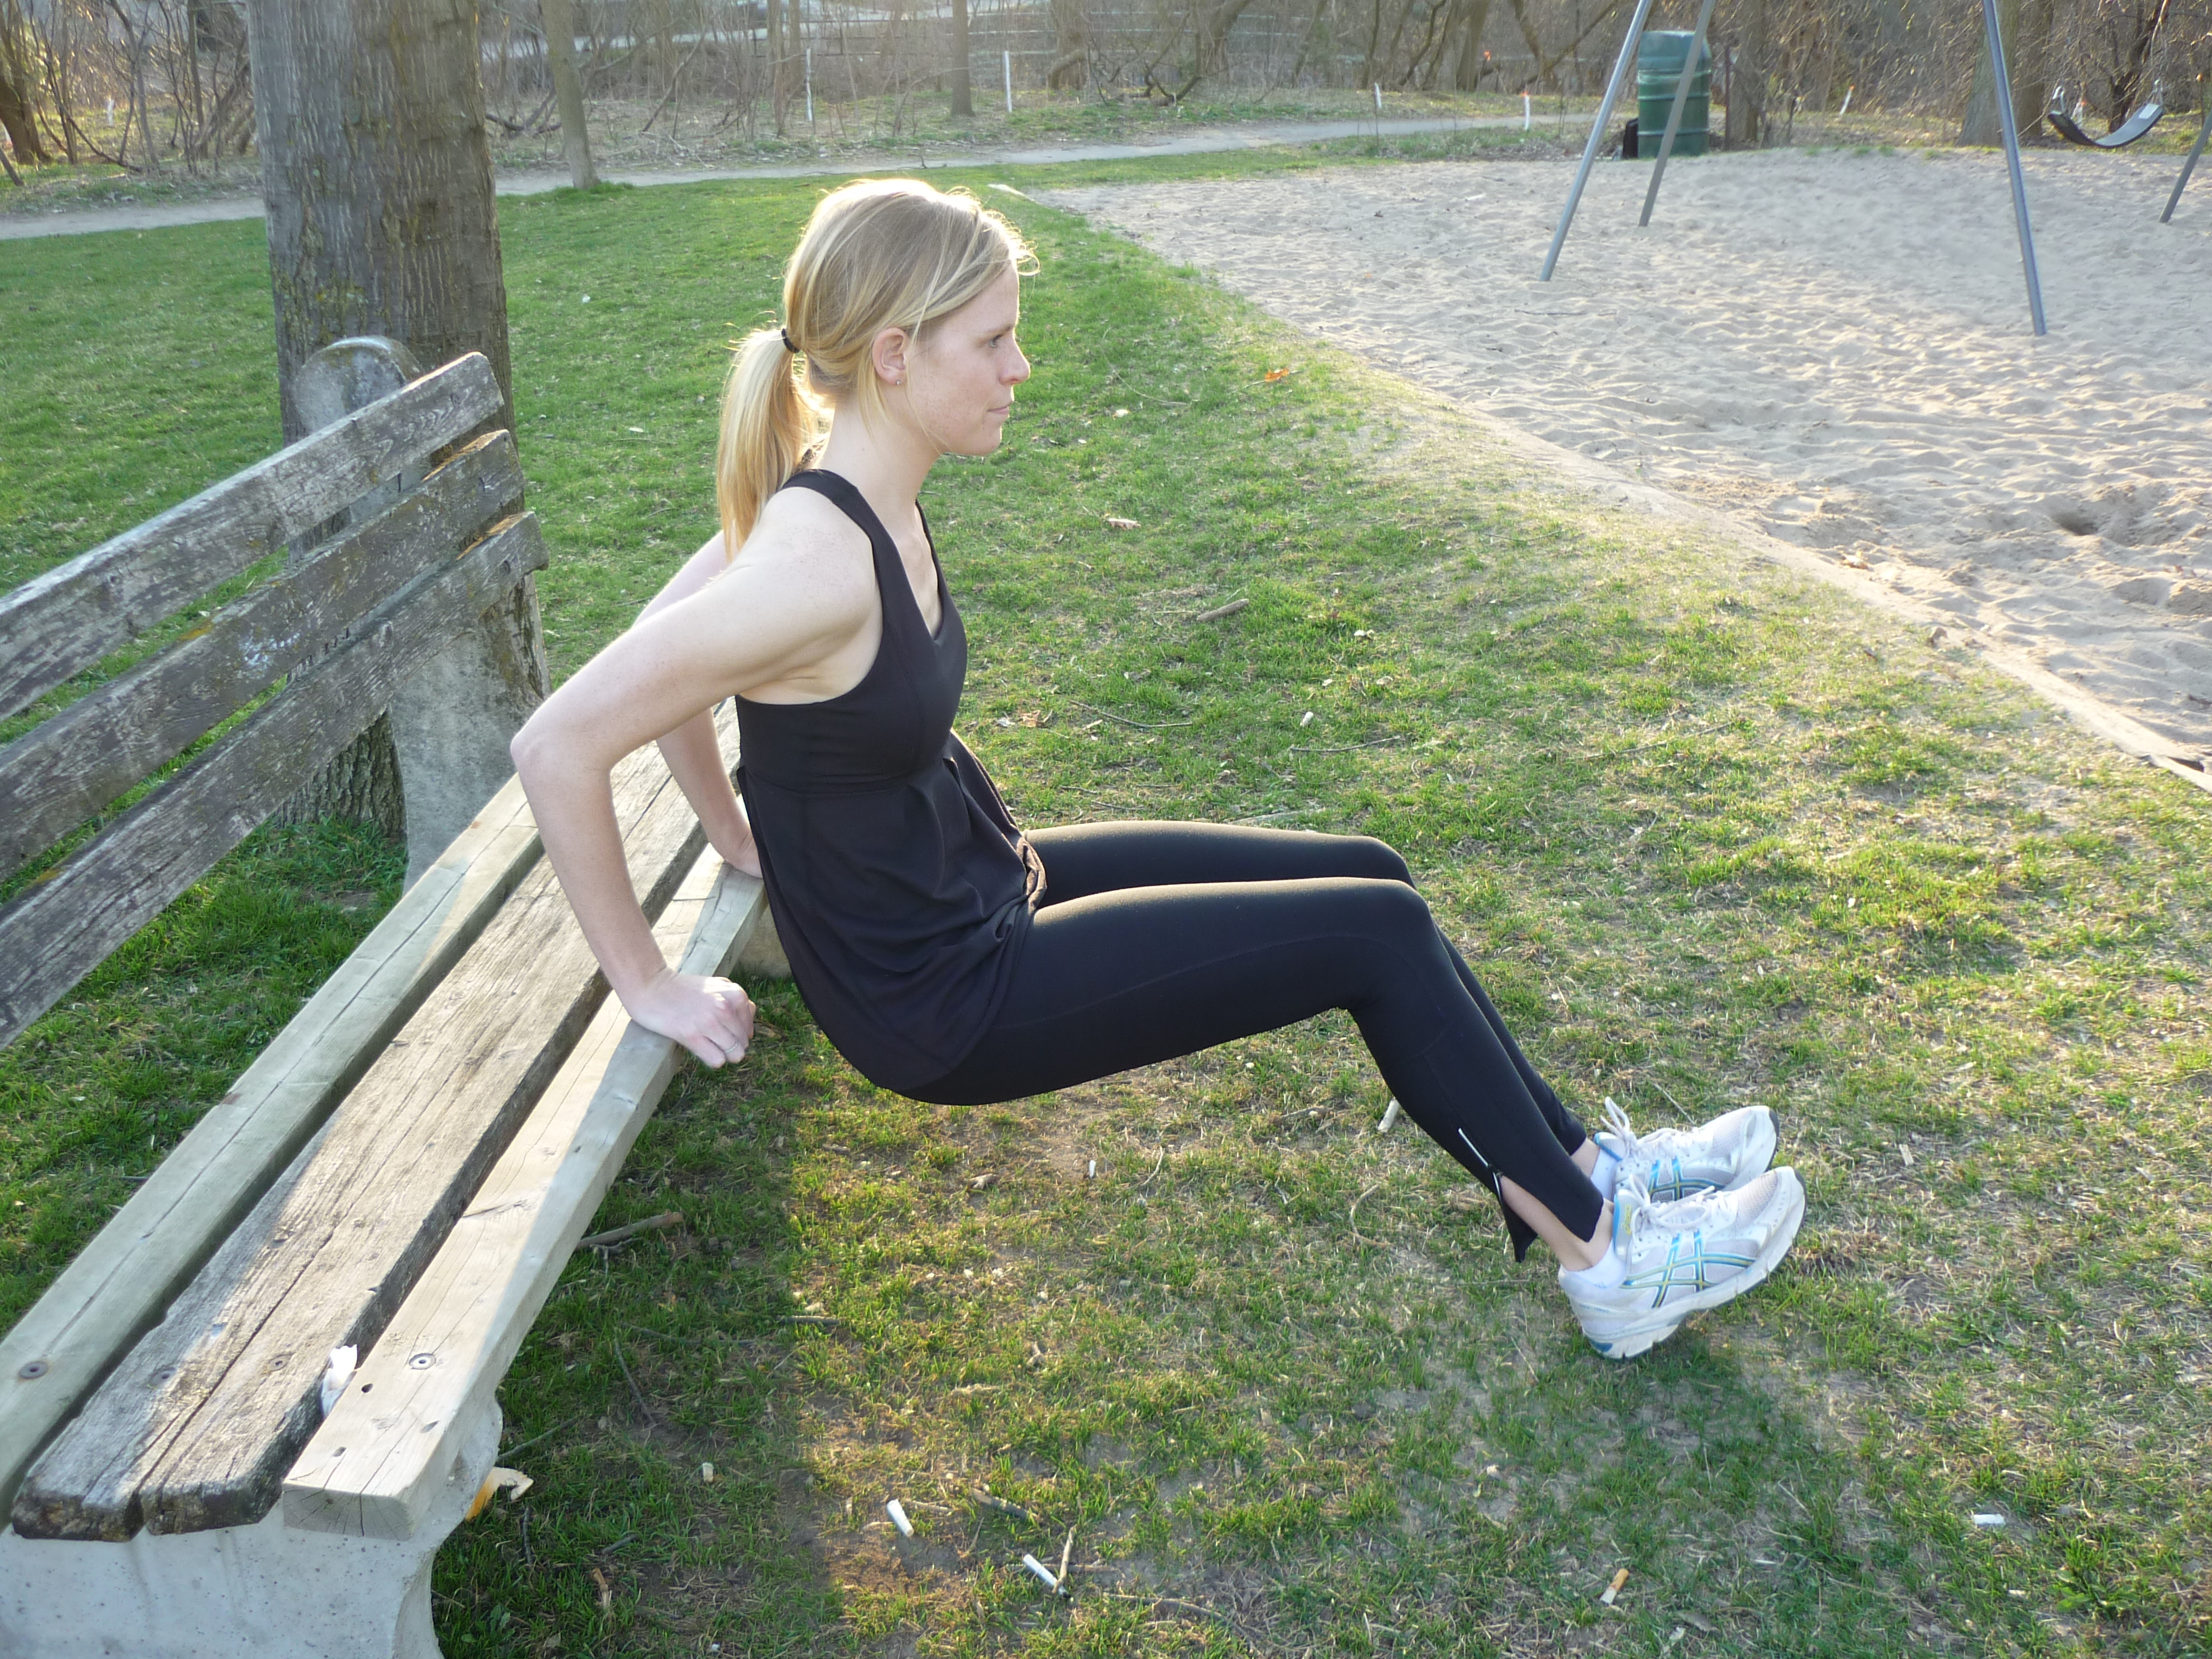 Chair dips on the park bench